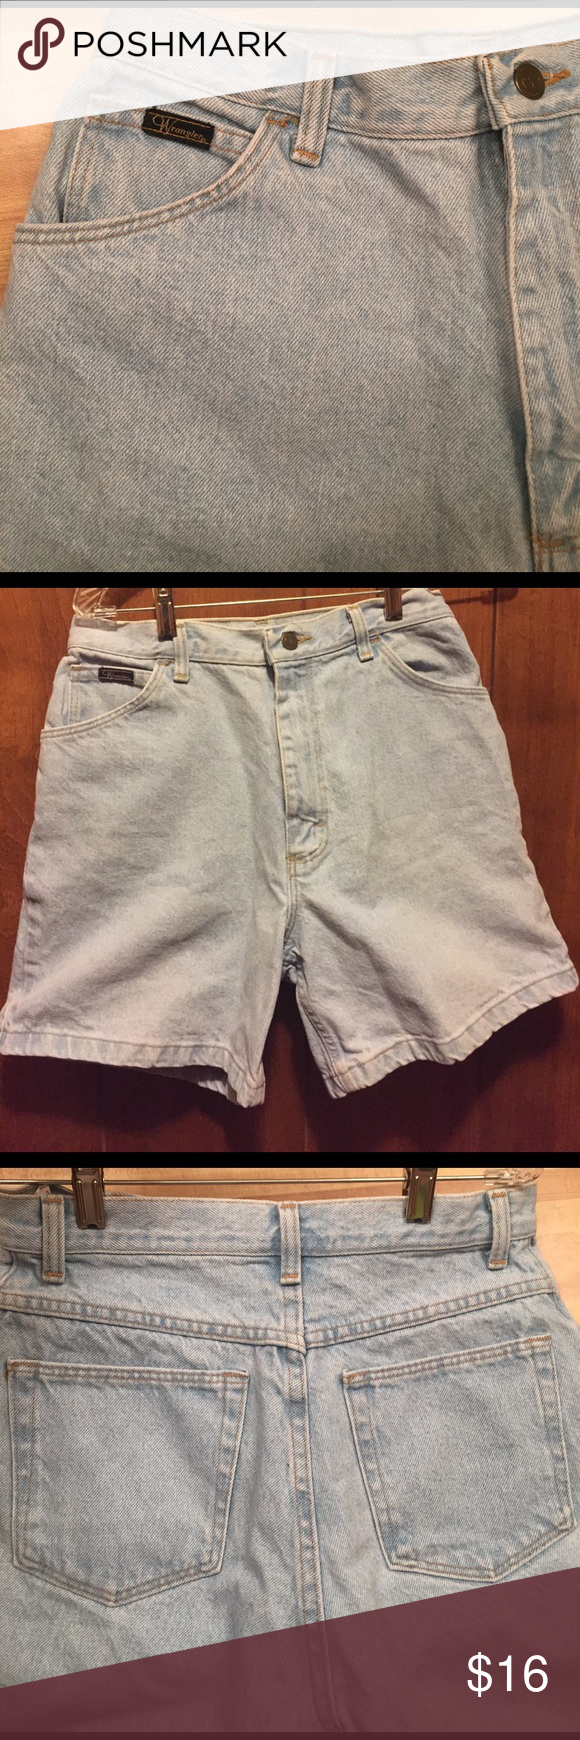 Vintage Mom Jean Shorts! 90s vintage mom jeans: fits a size 27-28! High waisted. Wrangler Shorts Jean Shorts